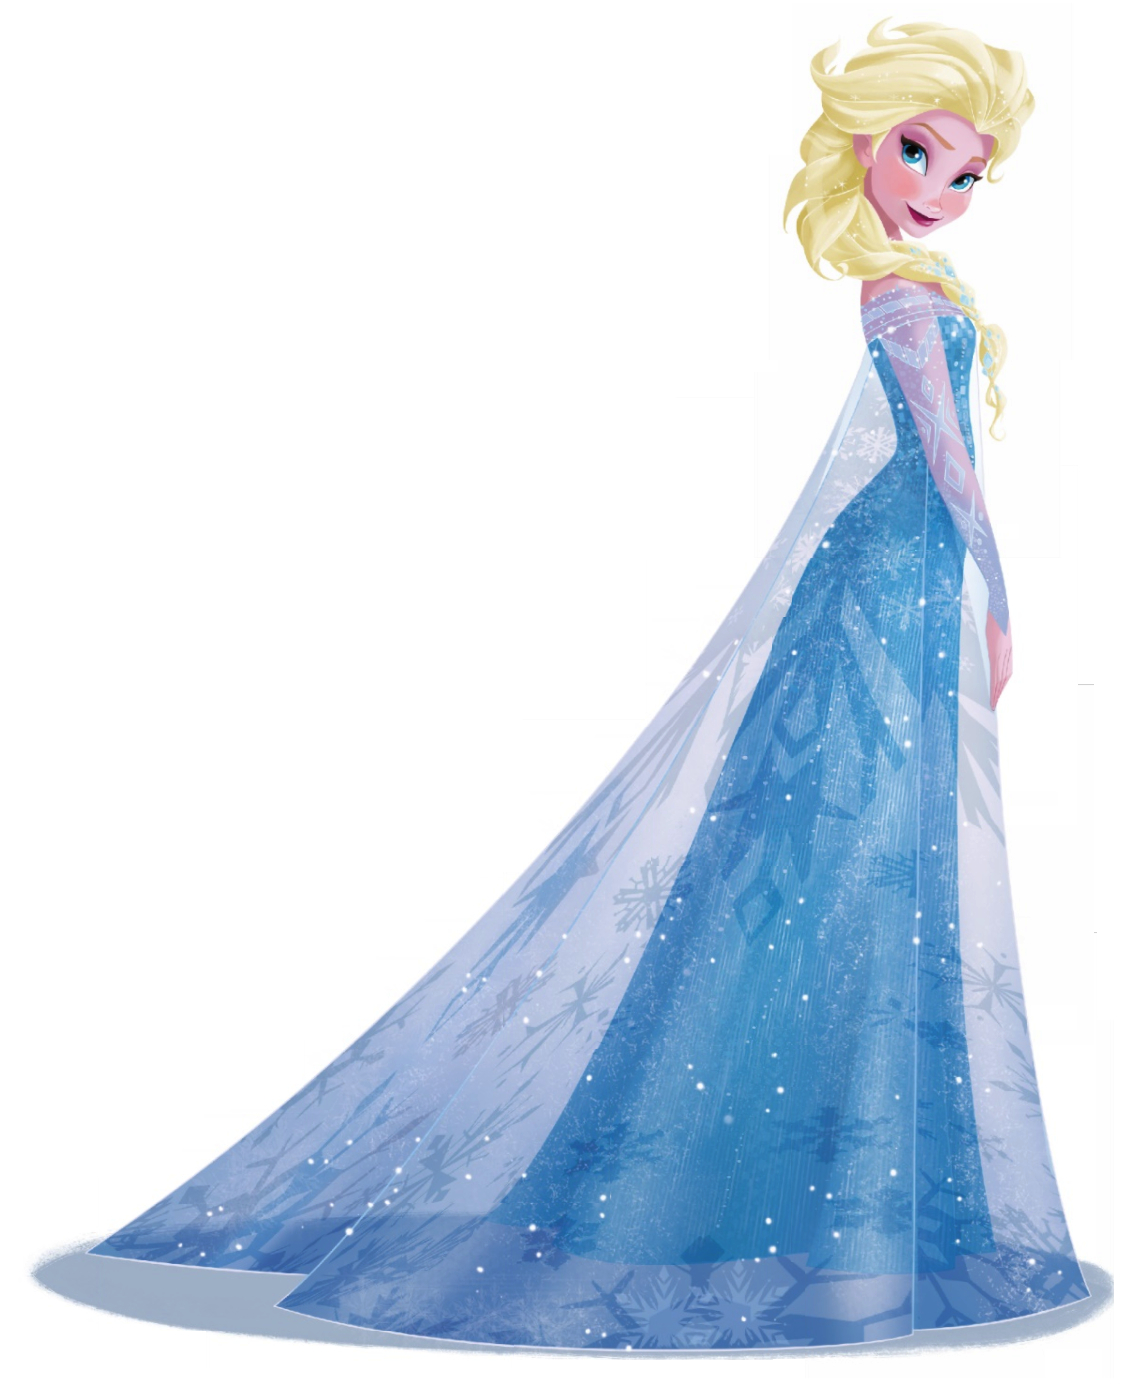 Dolls Objective Rare Frozen Doll Set Elsa Anna Princess The Very First Issue Disney Store As D23 Do You Want To Buy Some Chinese Native Produce?